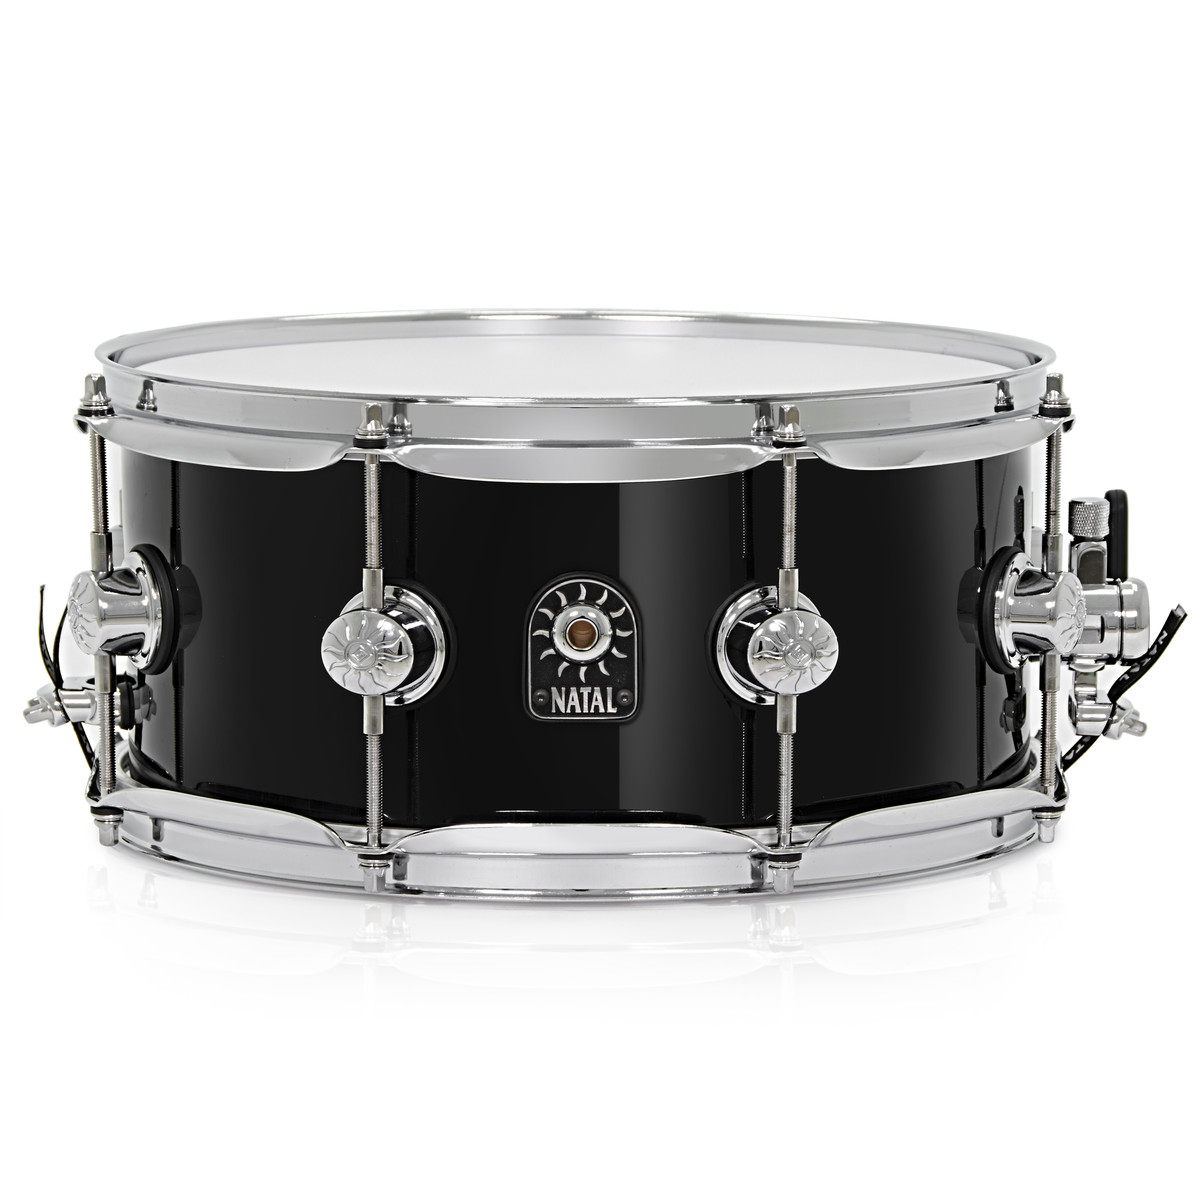 natal 12 39 39 x 5 5 39 39 stave maple snare drum black nearly new at gear4music. Black Bedroom Furniture Sets. Home Design Ideas